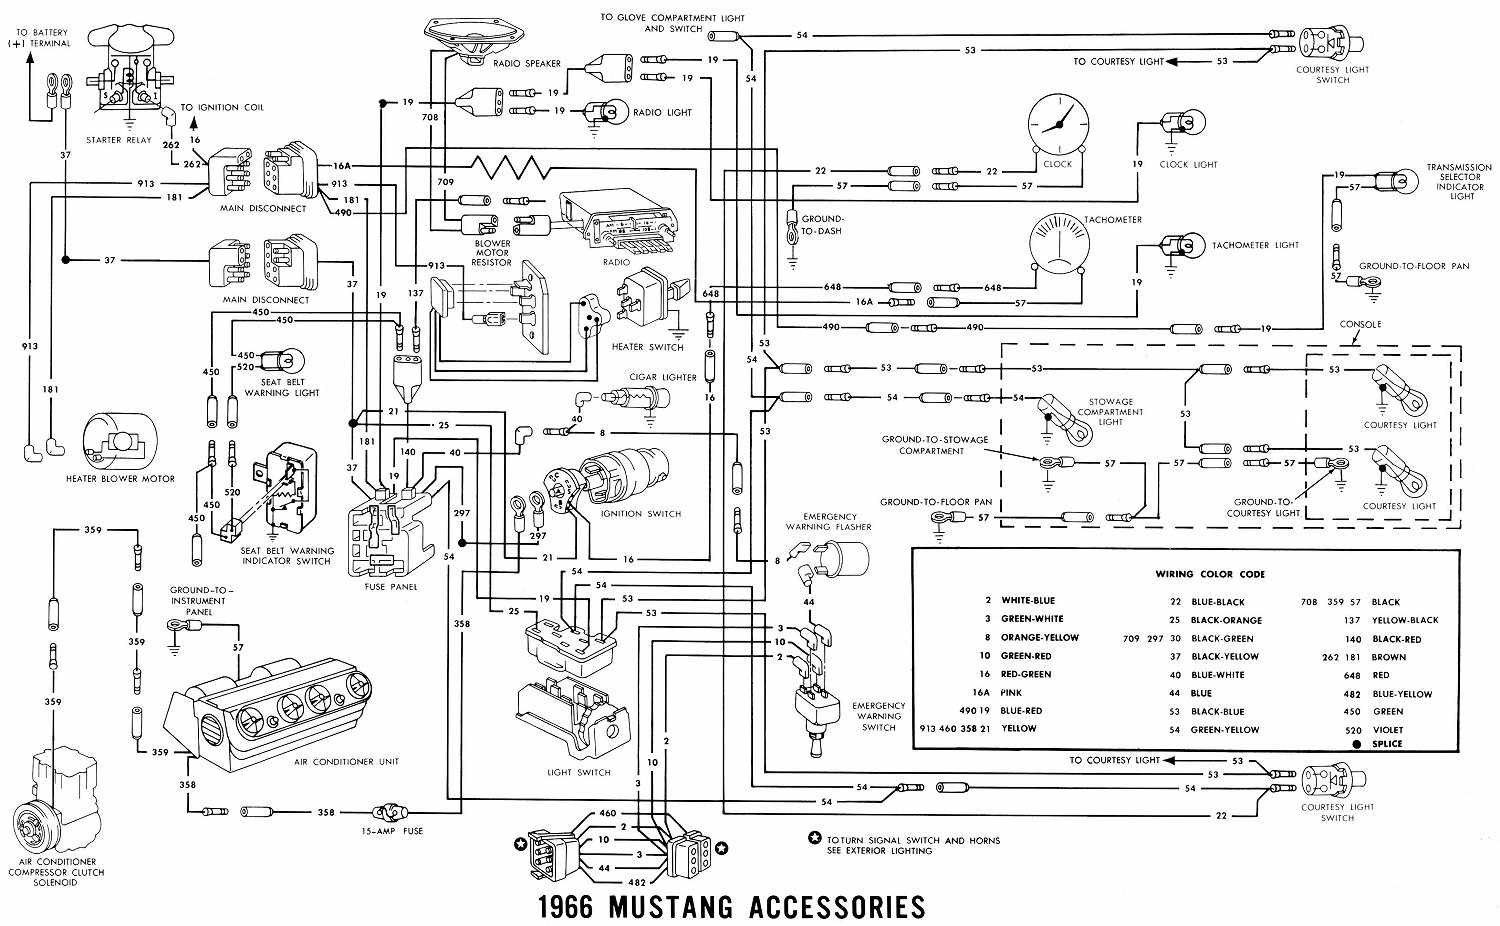 Mustang electrical wiring diagram wire center u ayseesra co no dash jpg  1500x926 2011 mustang headlight